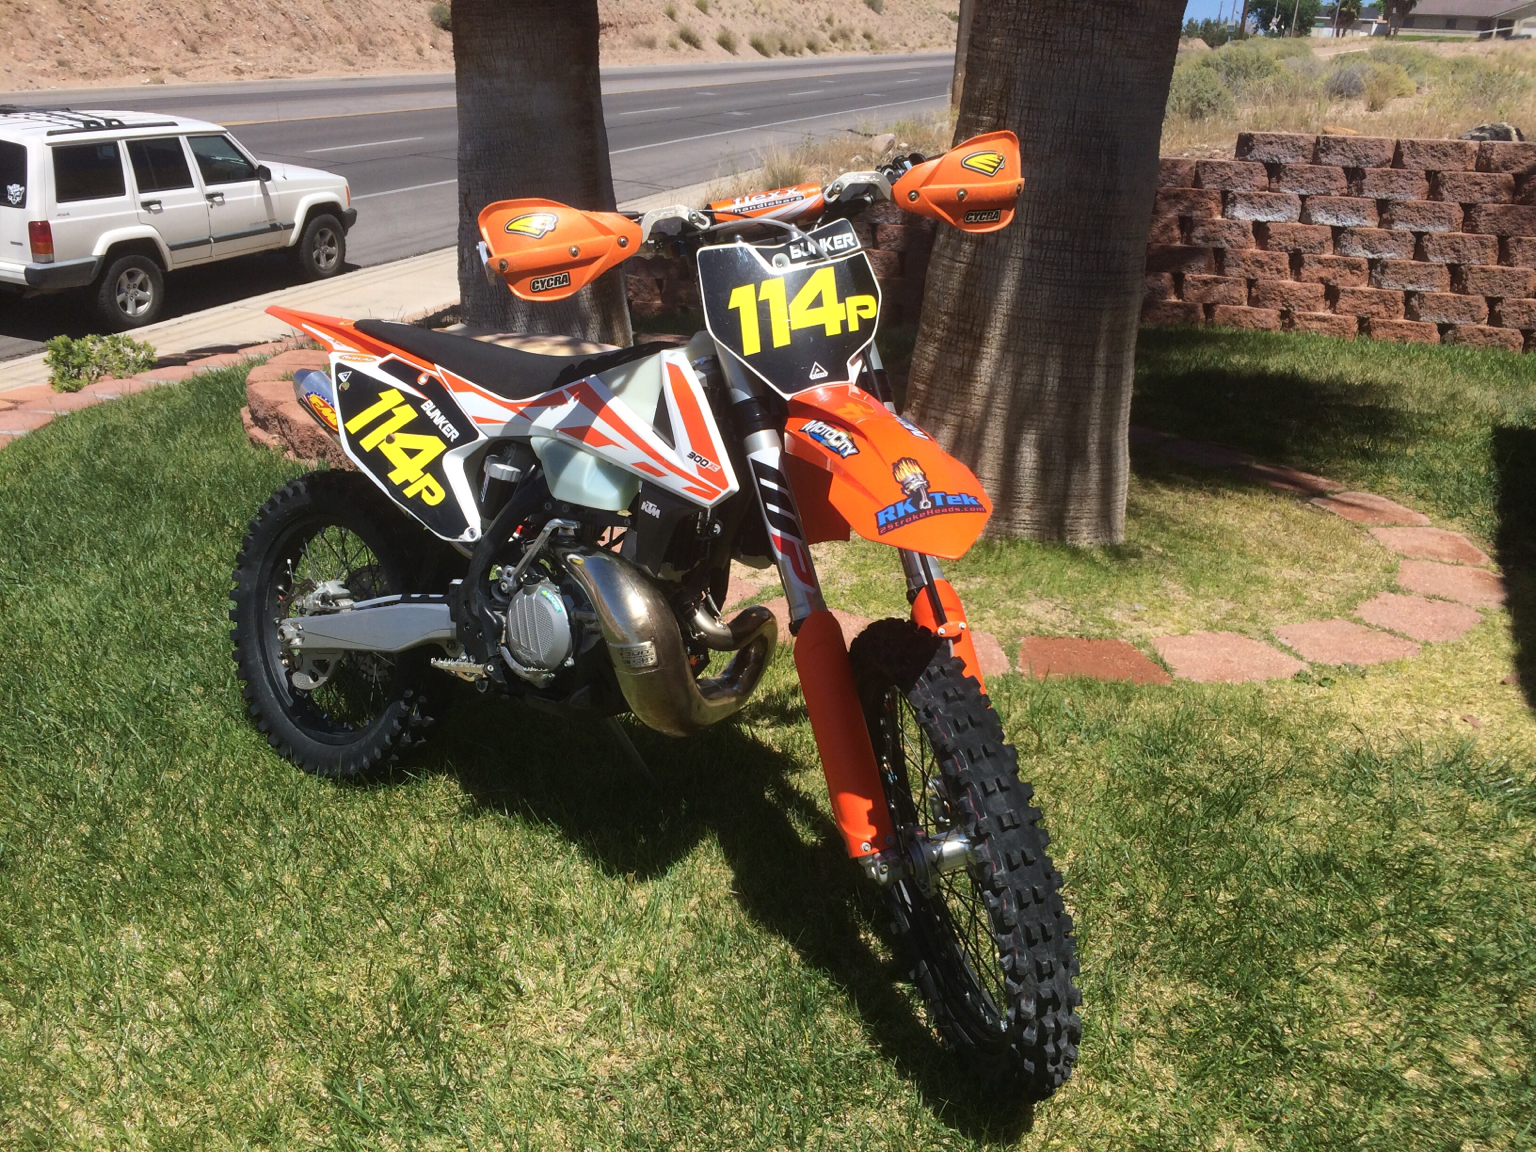 2017 KTM 300 XC Mods What have you done? Husqvarna TX 300